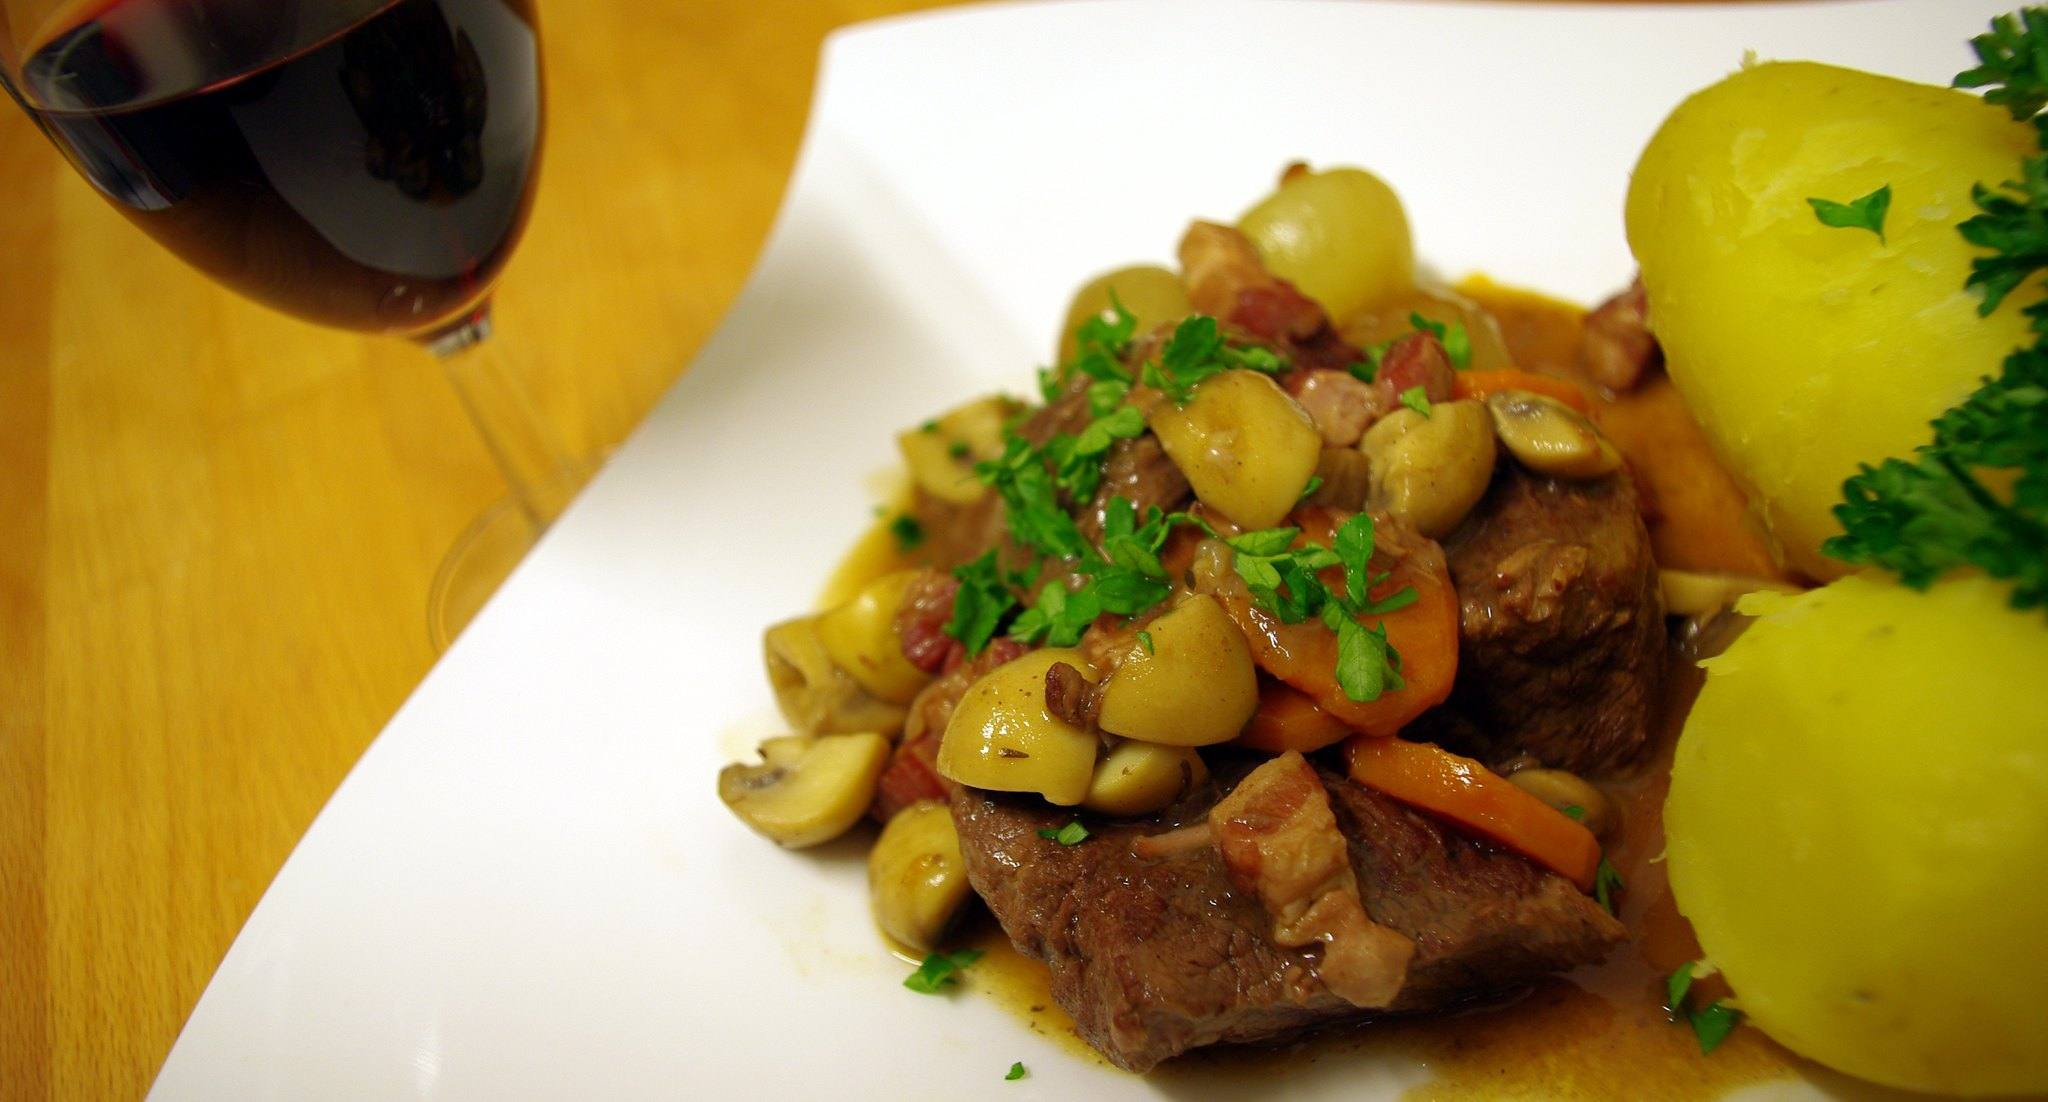 European Cuisine 12 French Dishes to Spoil Your Taste Buds